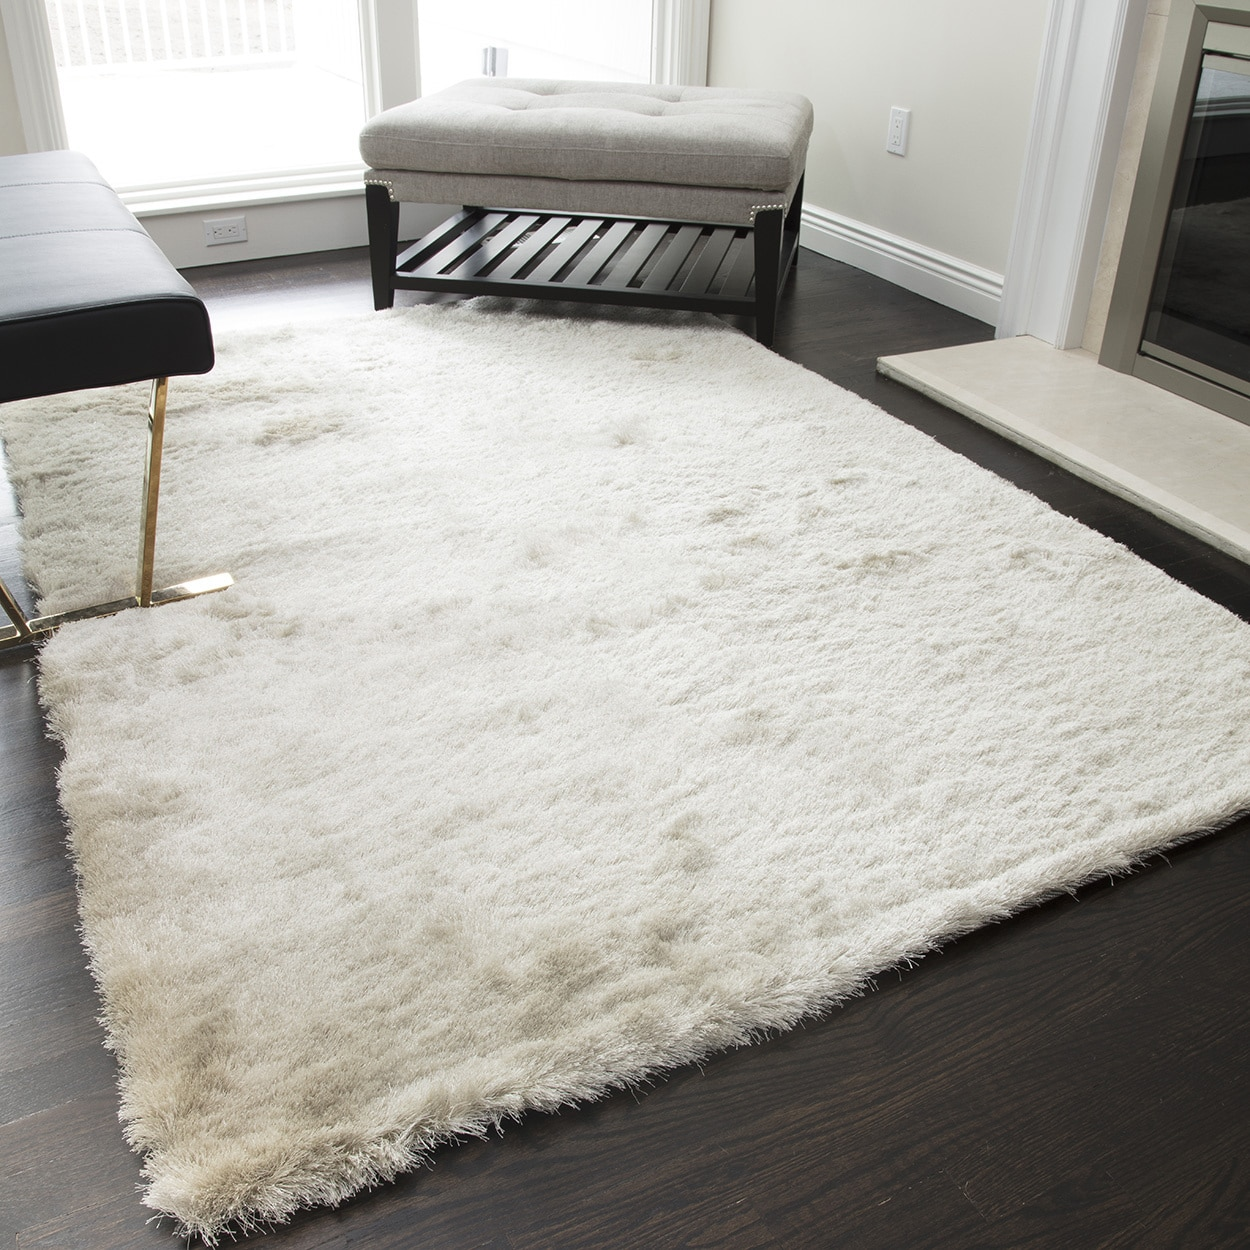 Shop Essie Hand Tufted Solid Area Rug 5 X 8 On Sale Overstock 9639002